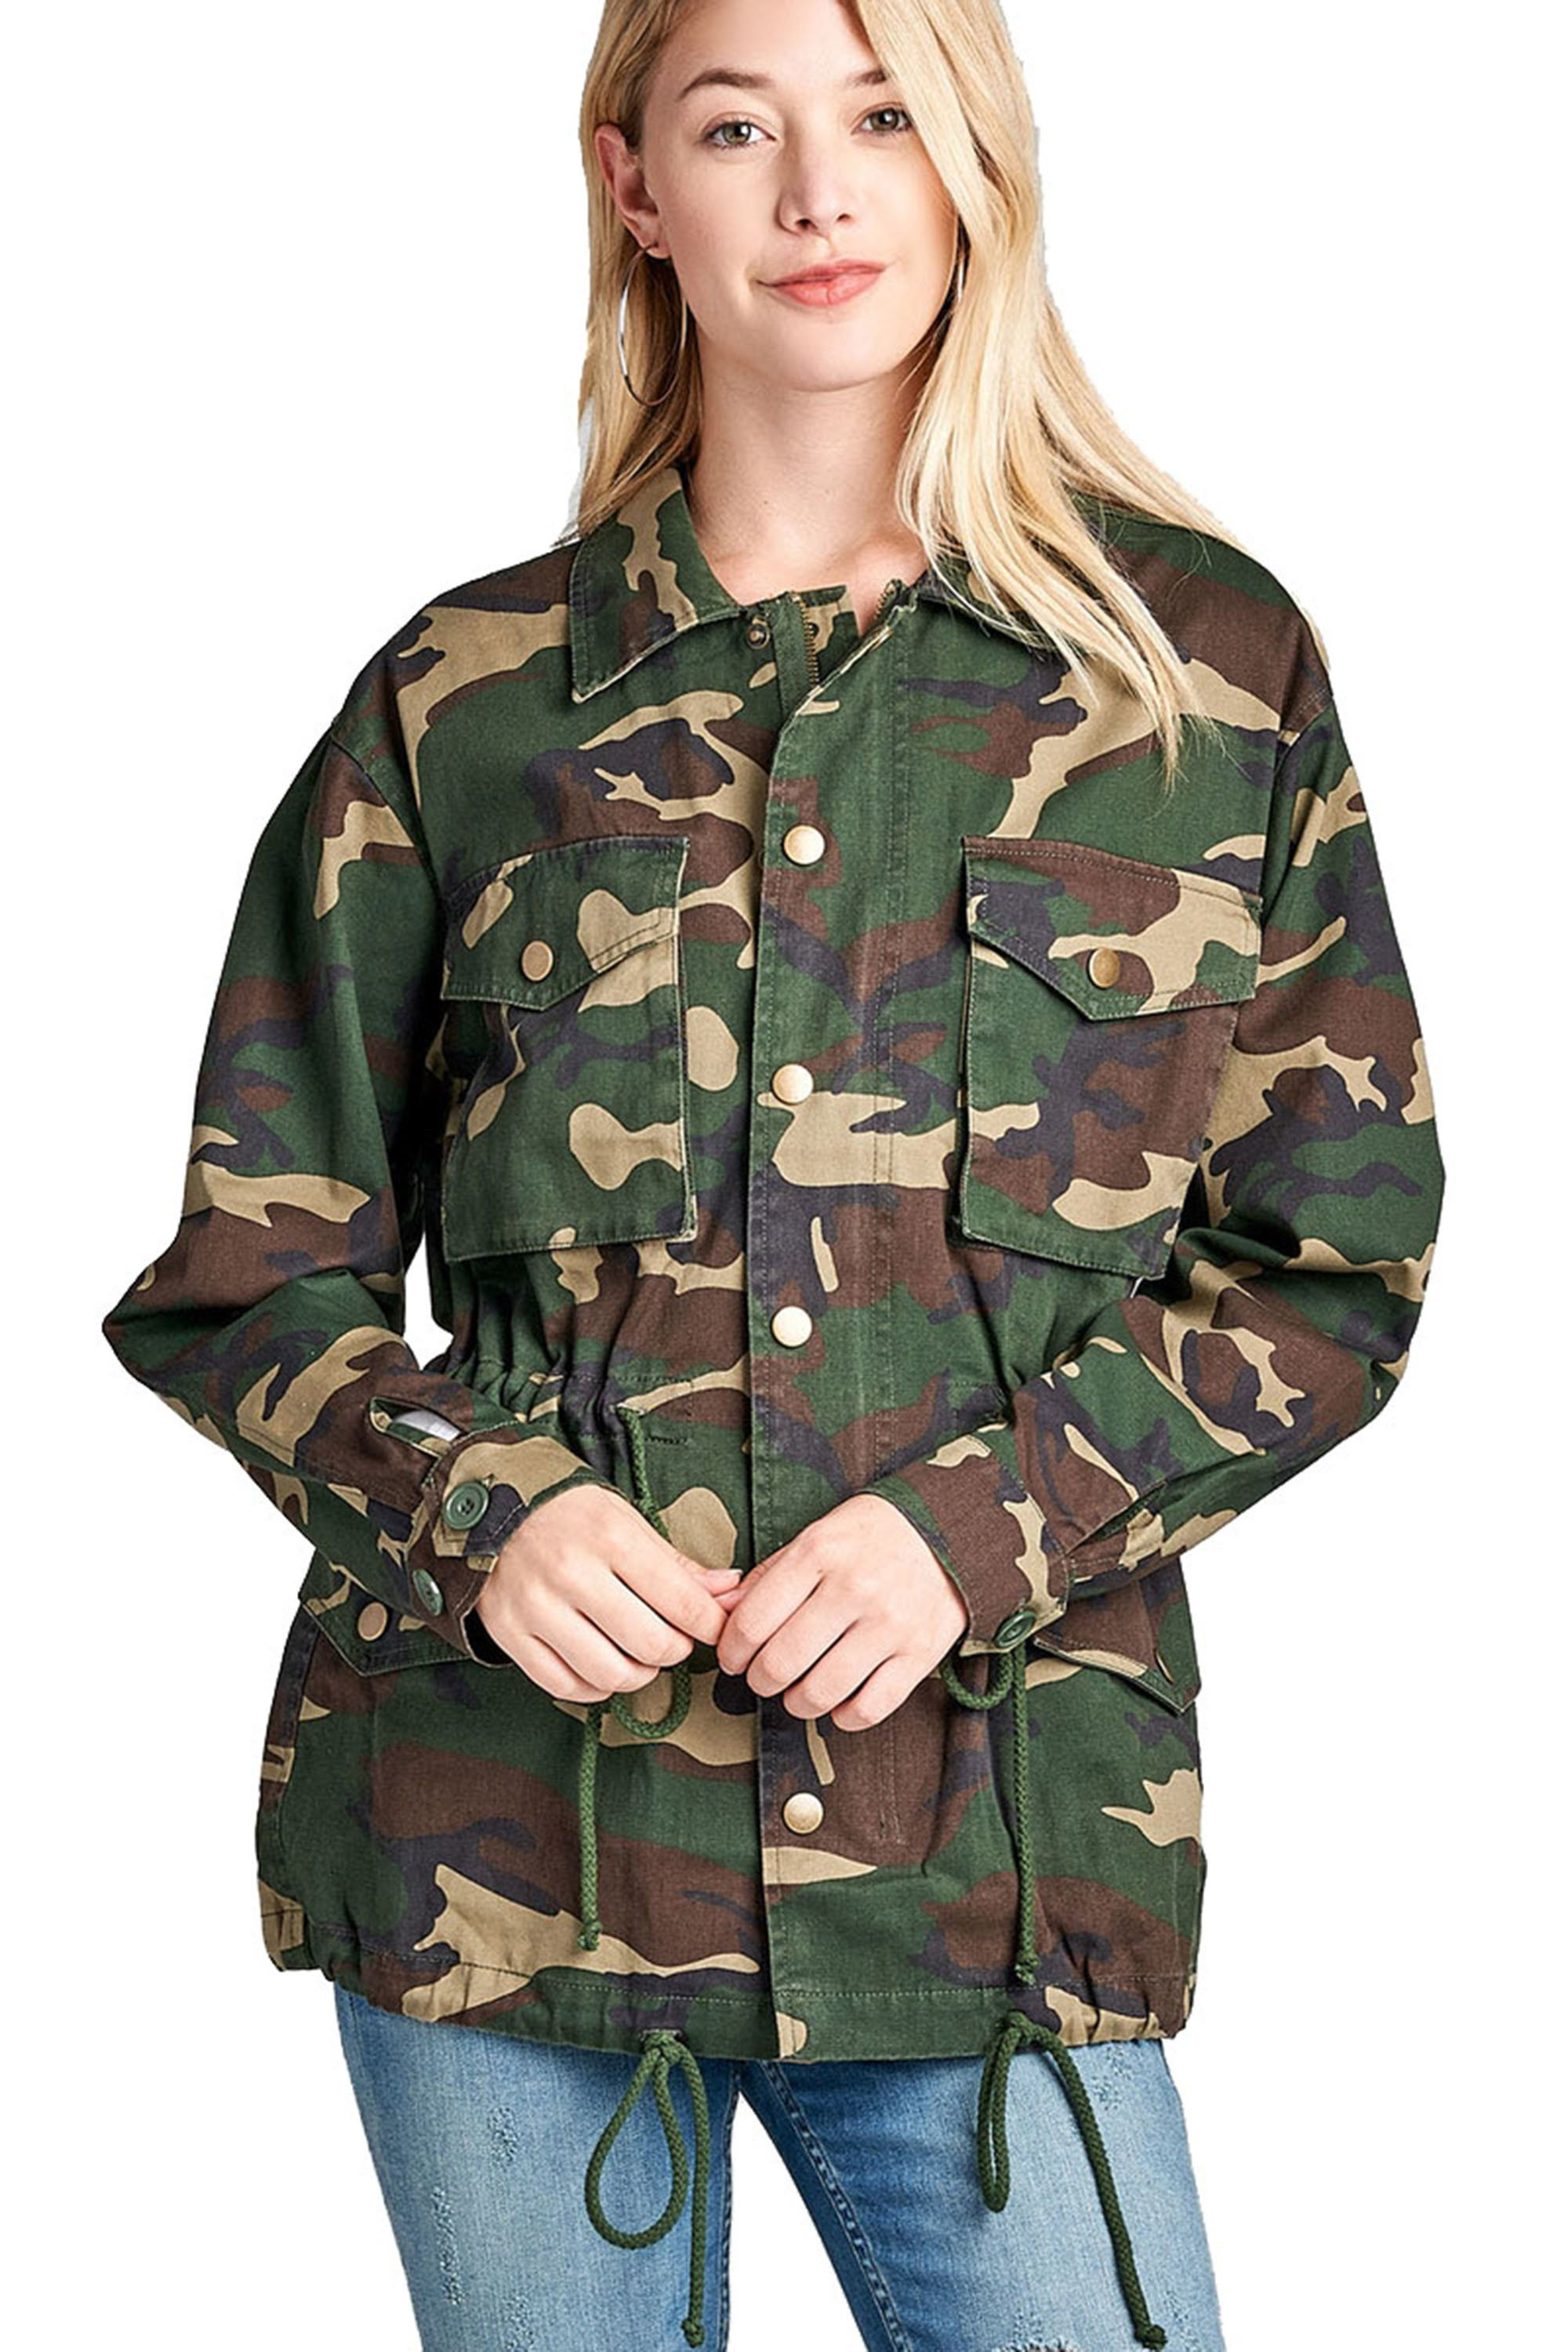 299b0a61e3e Khanomak Women s Oversized Camouflage Print Utility Long Jacket in ...